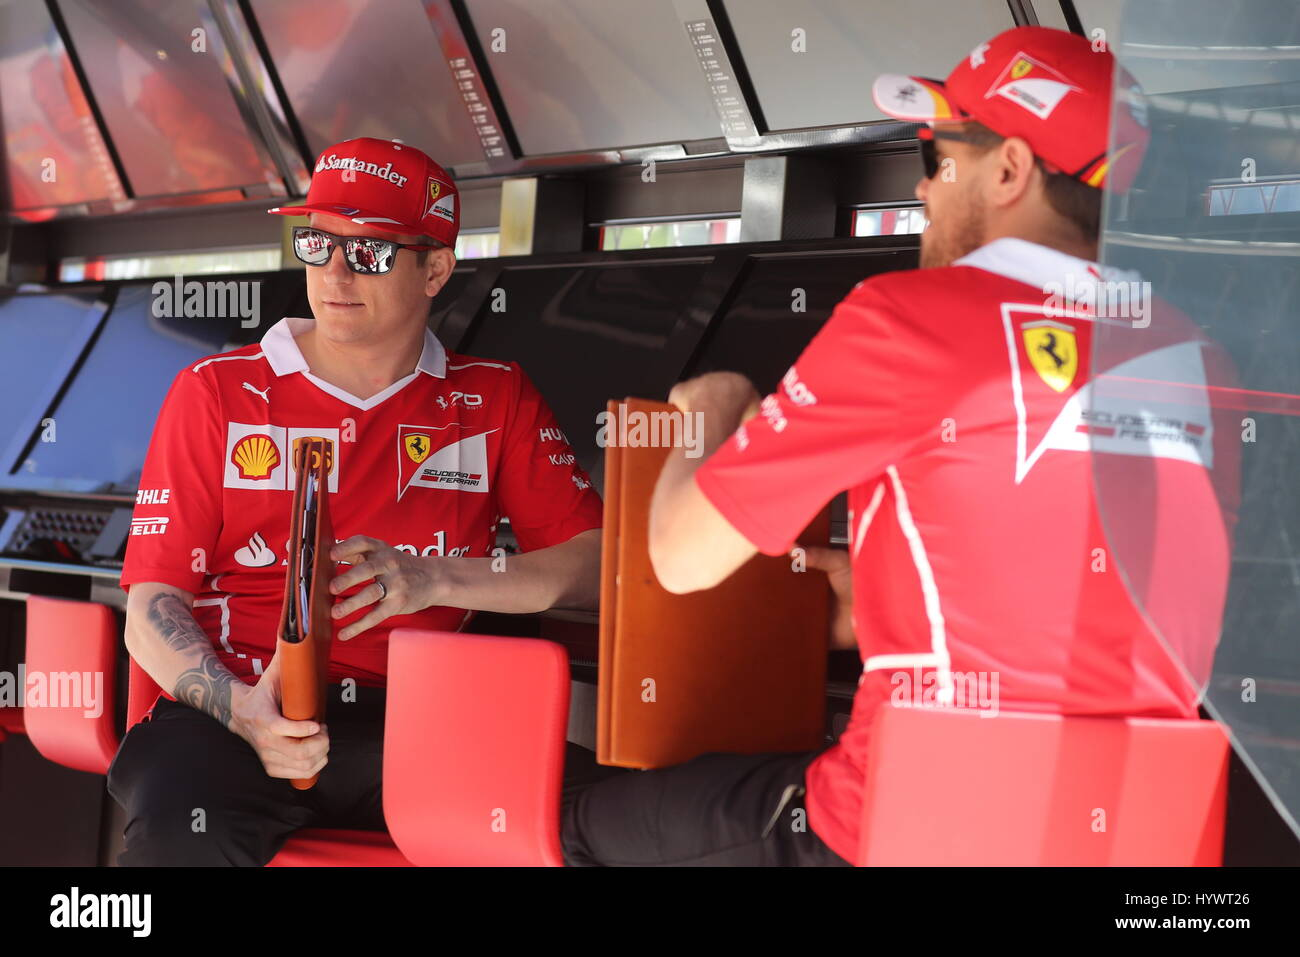 78223bdf7c51a6 27th Apr, 2017. Scuderia Ferrari F1 team drivers Kimi Raikkonen (L) of  Finland and Sebastian Vettel of Germany seen ahead of a free practice  session of the ...